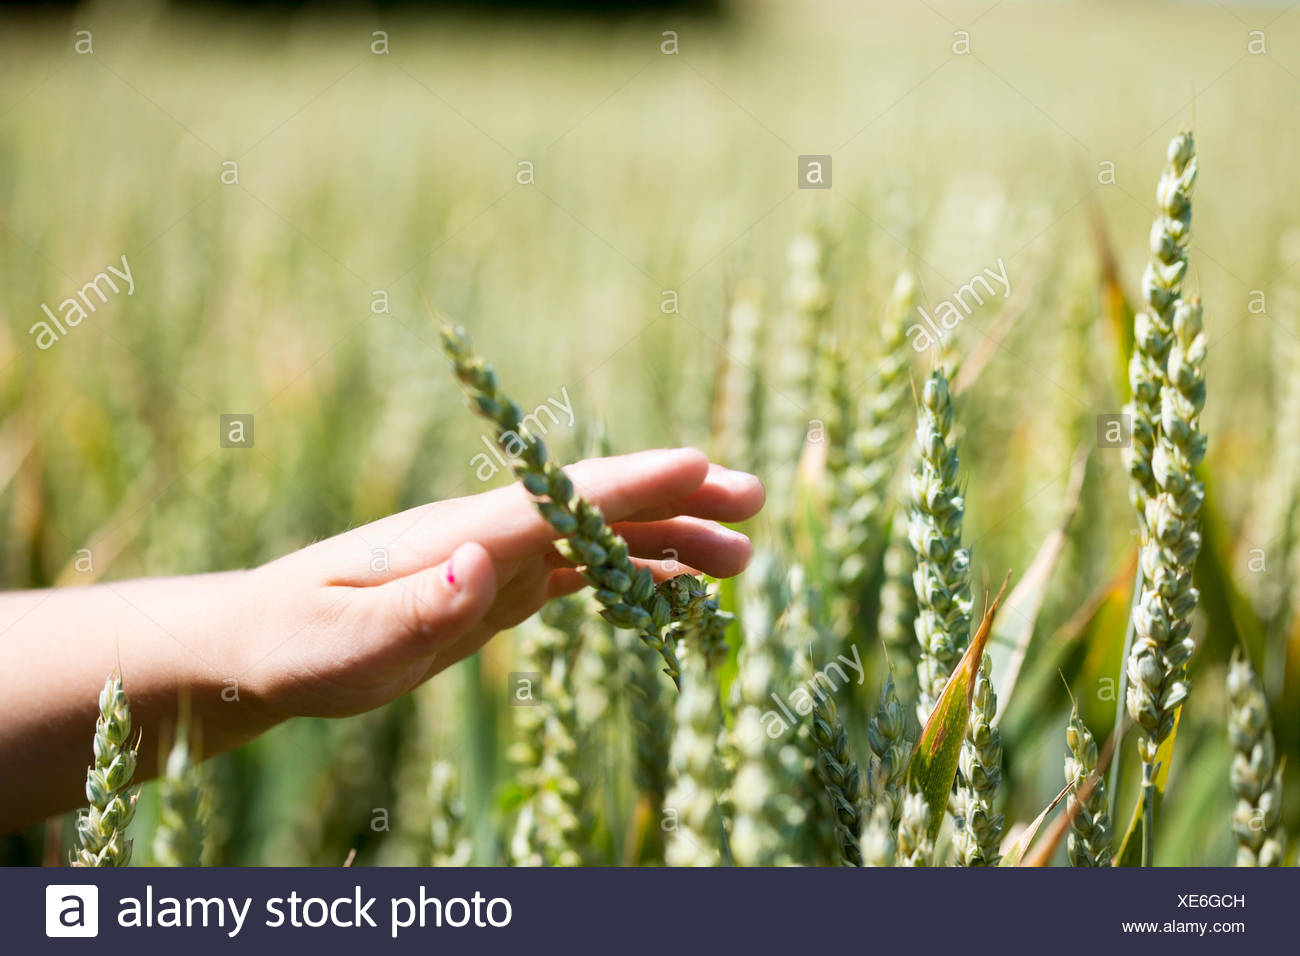 Cropland in Sweden - Stock Image